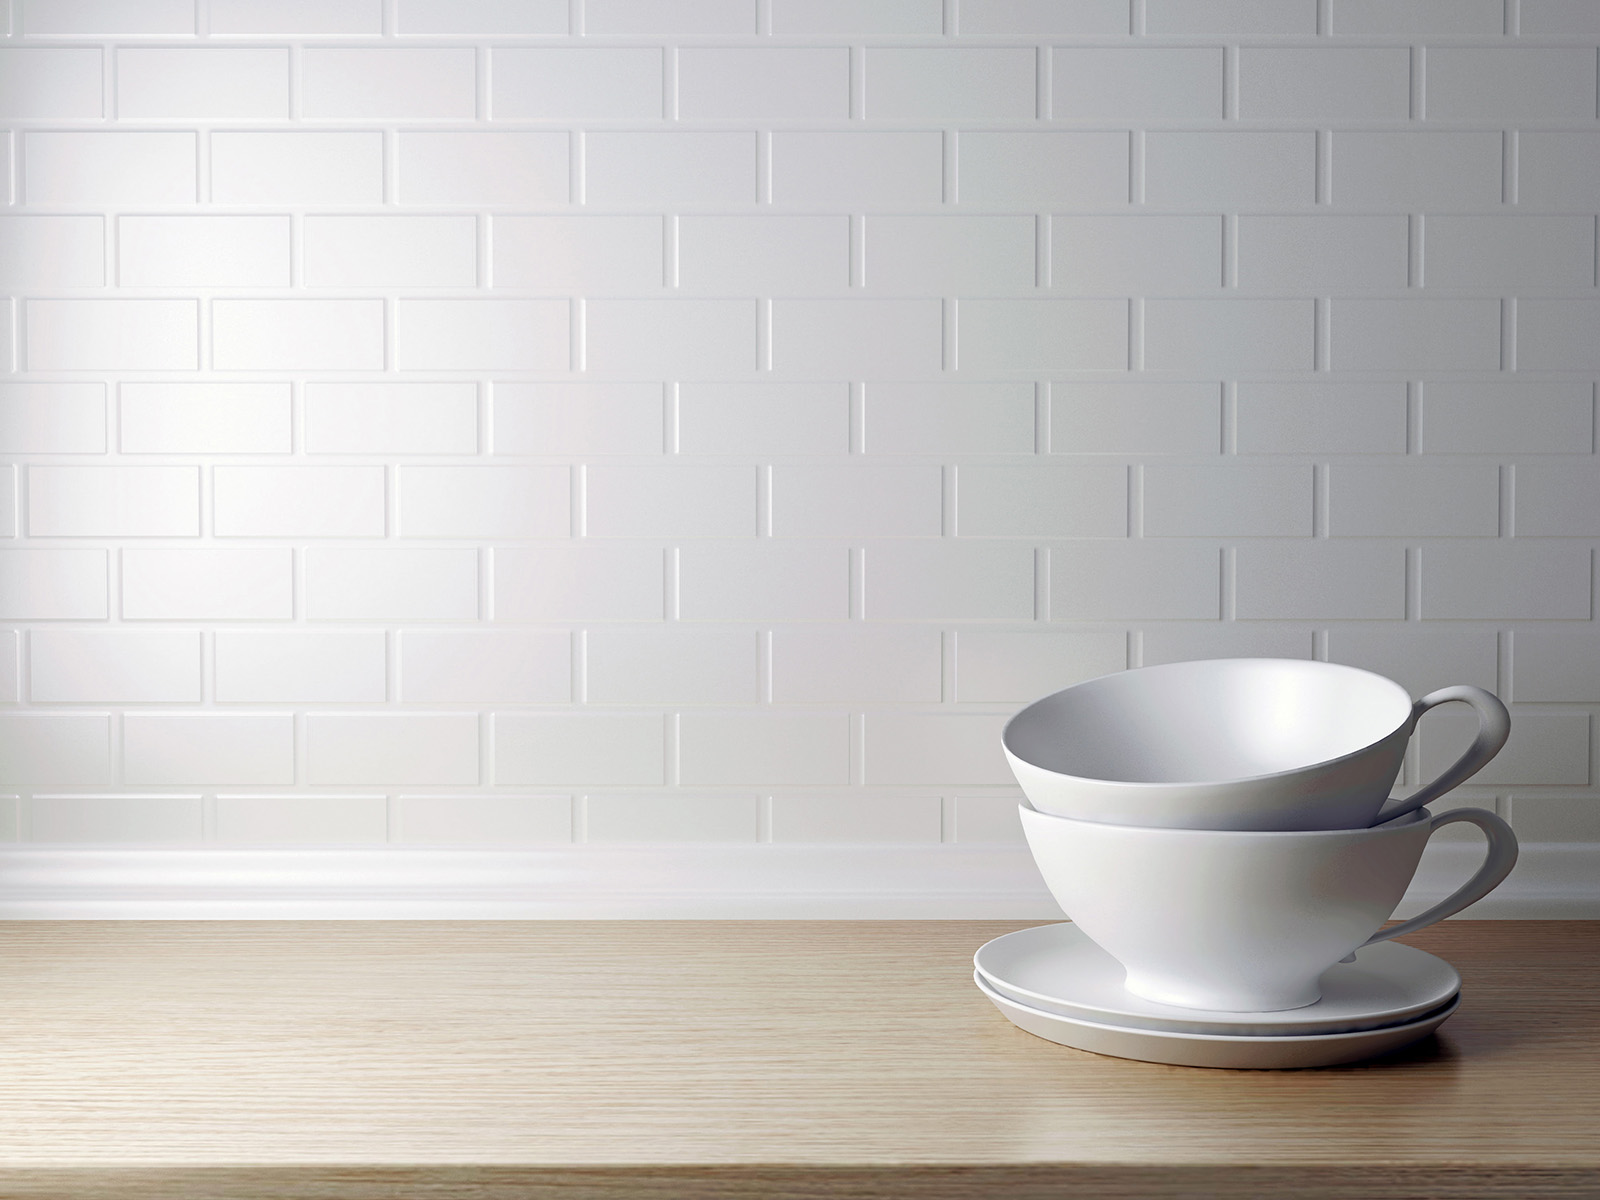 Sense of light walls and dishes 50944